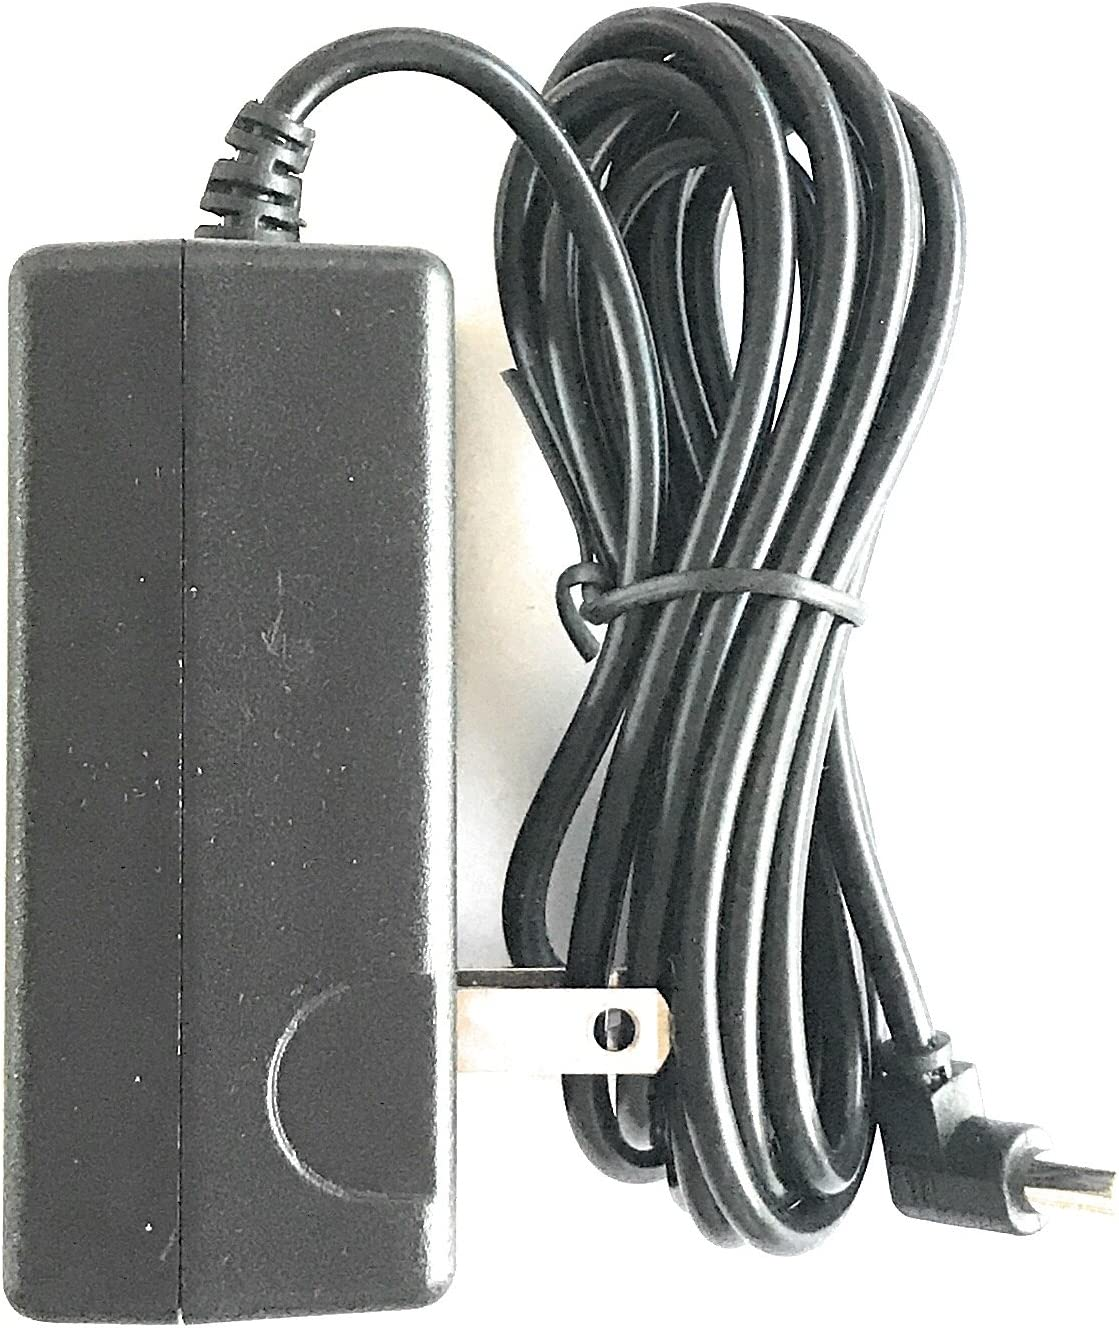 AC Adapter DC Wall Power Supply Charger Cord For Korg Electribe 2 Music Station